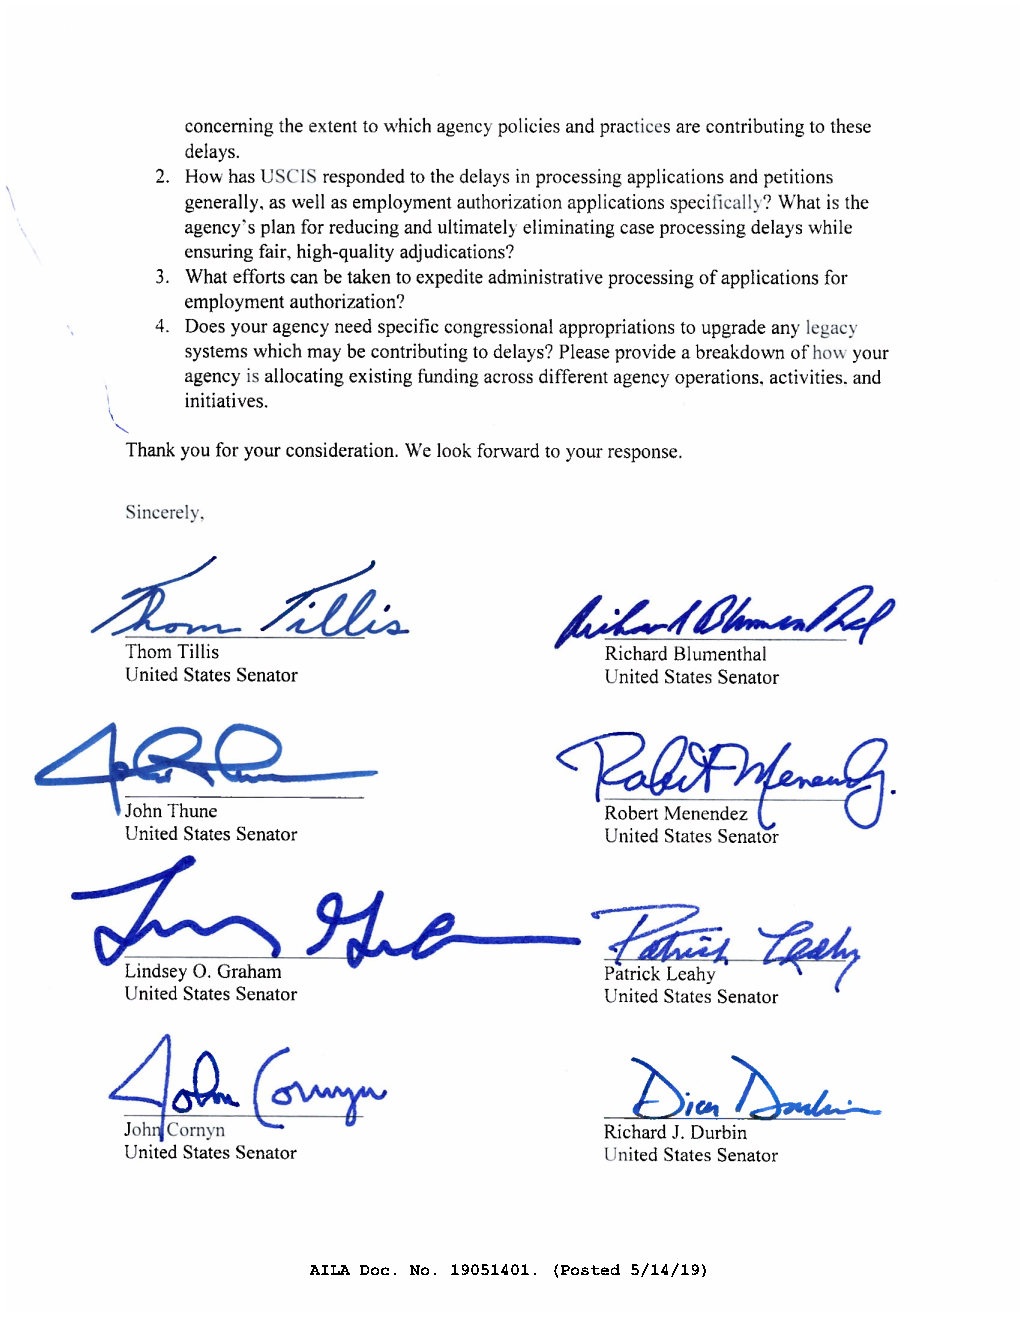 US-Senate-Letter-May-13-2019_Page2.jpg